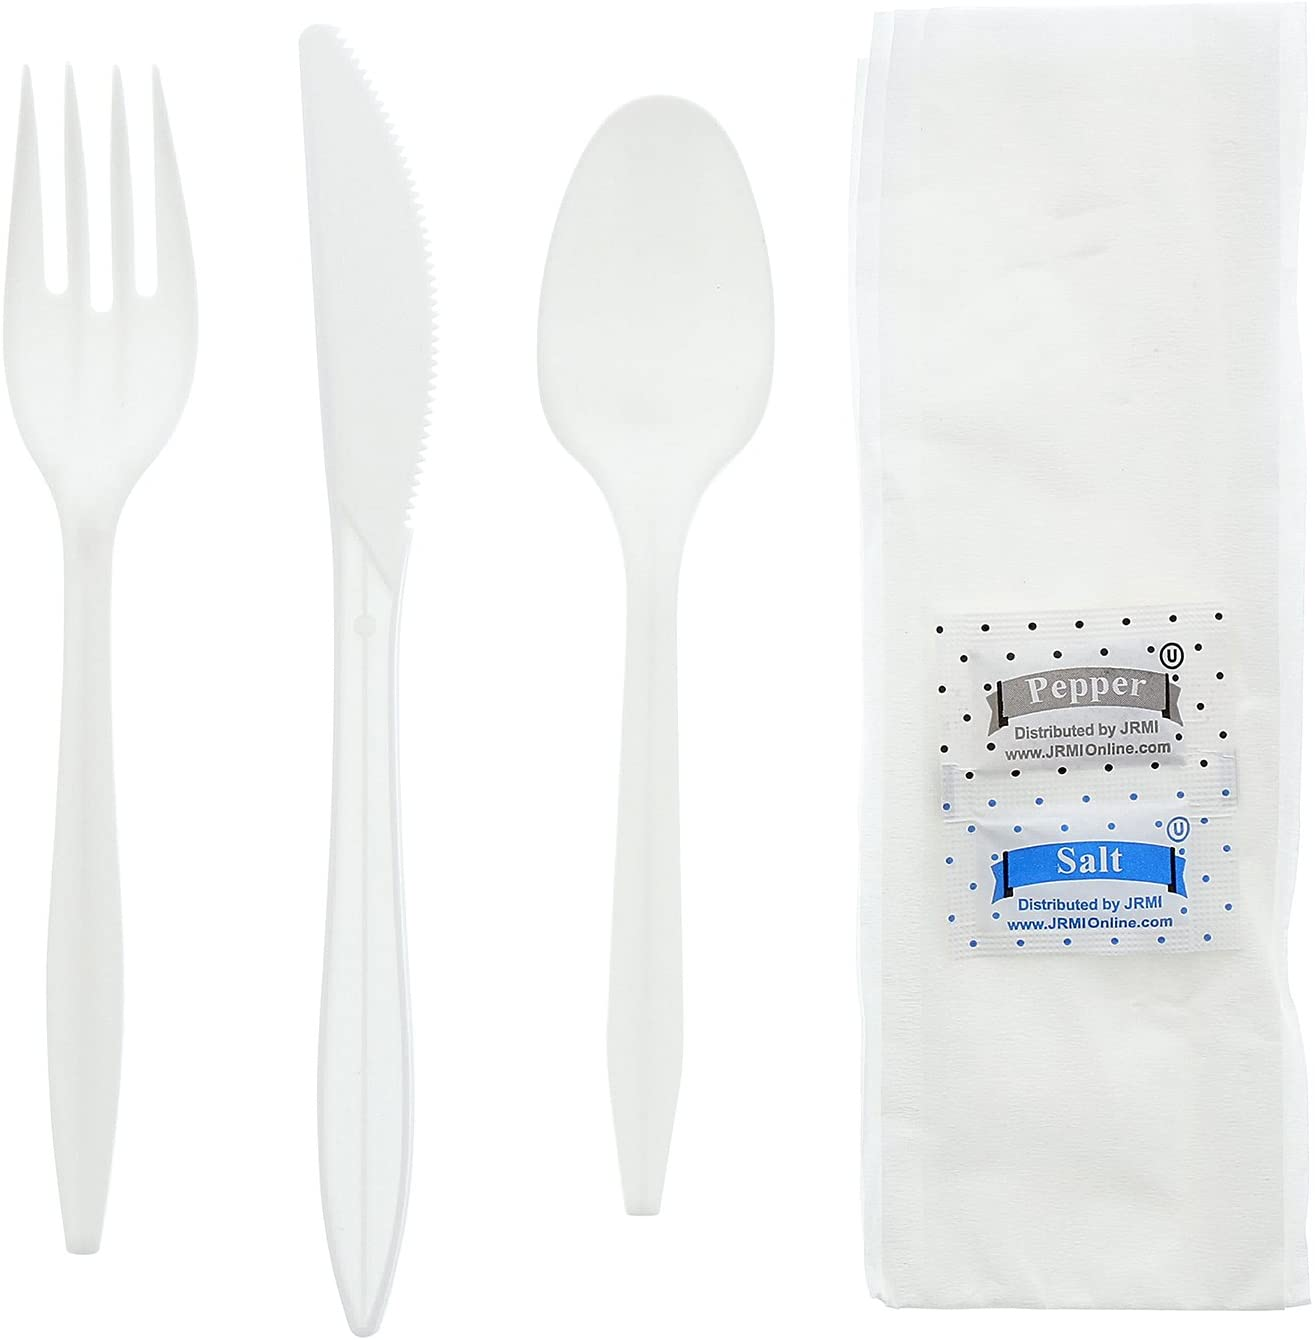 AmerCare Six Piece Meal Kit with 12 x 13 Napkin, Salt and Pepper Packets, White Medium Weight Fork, Knife, and Teaspoon, Case of 250